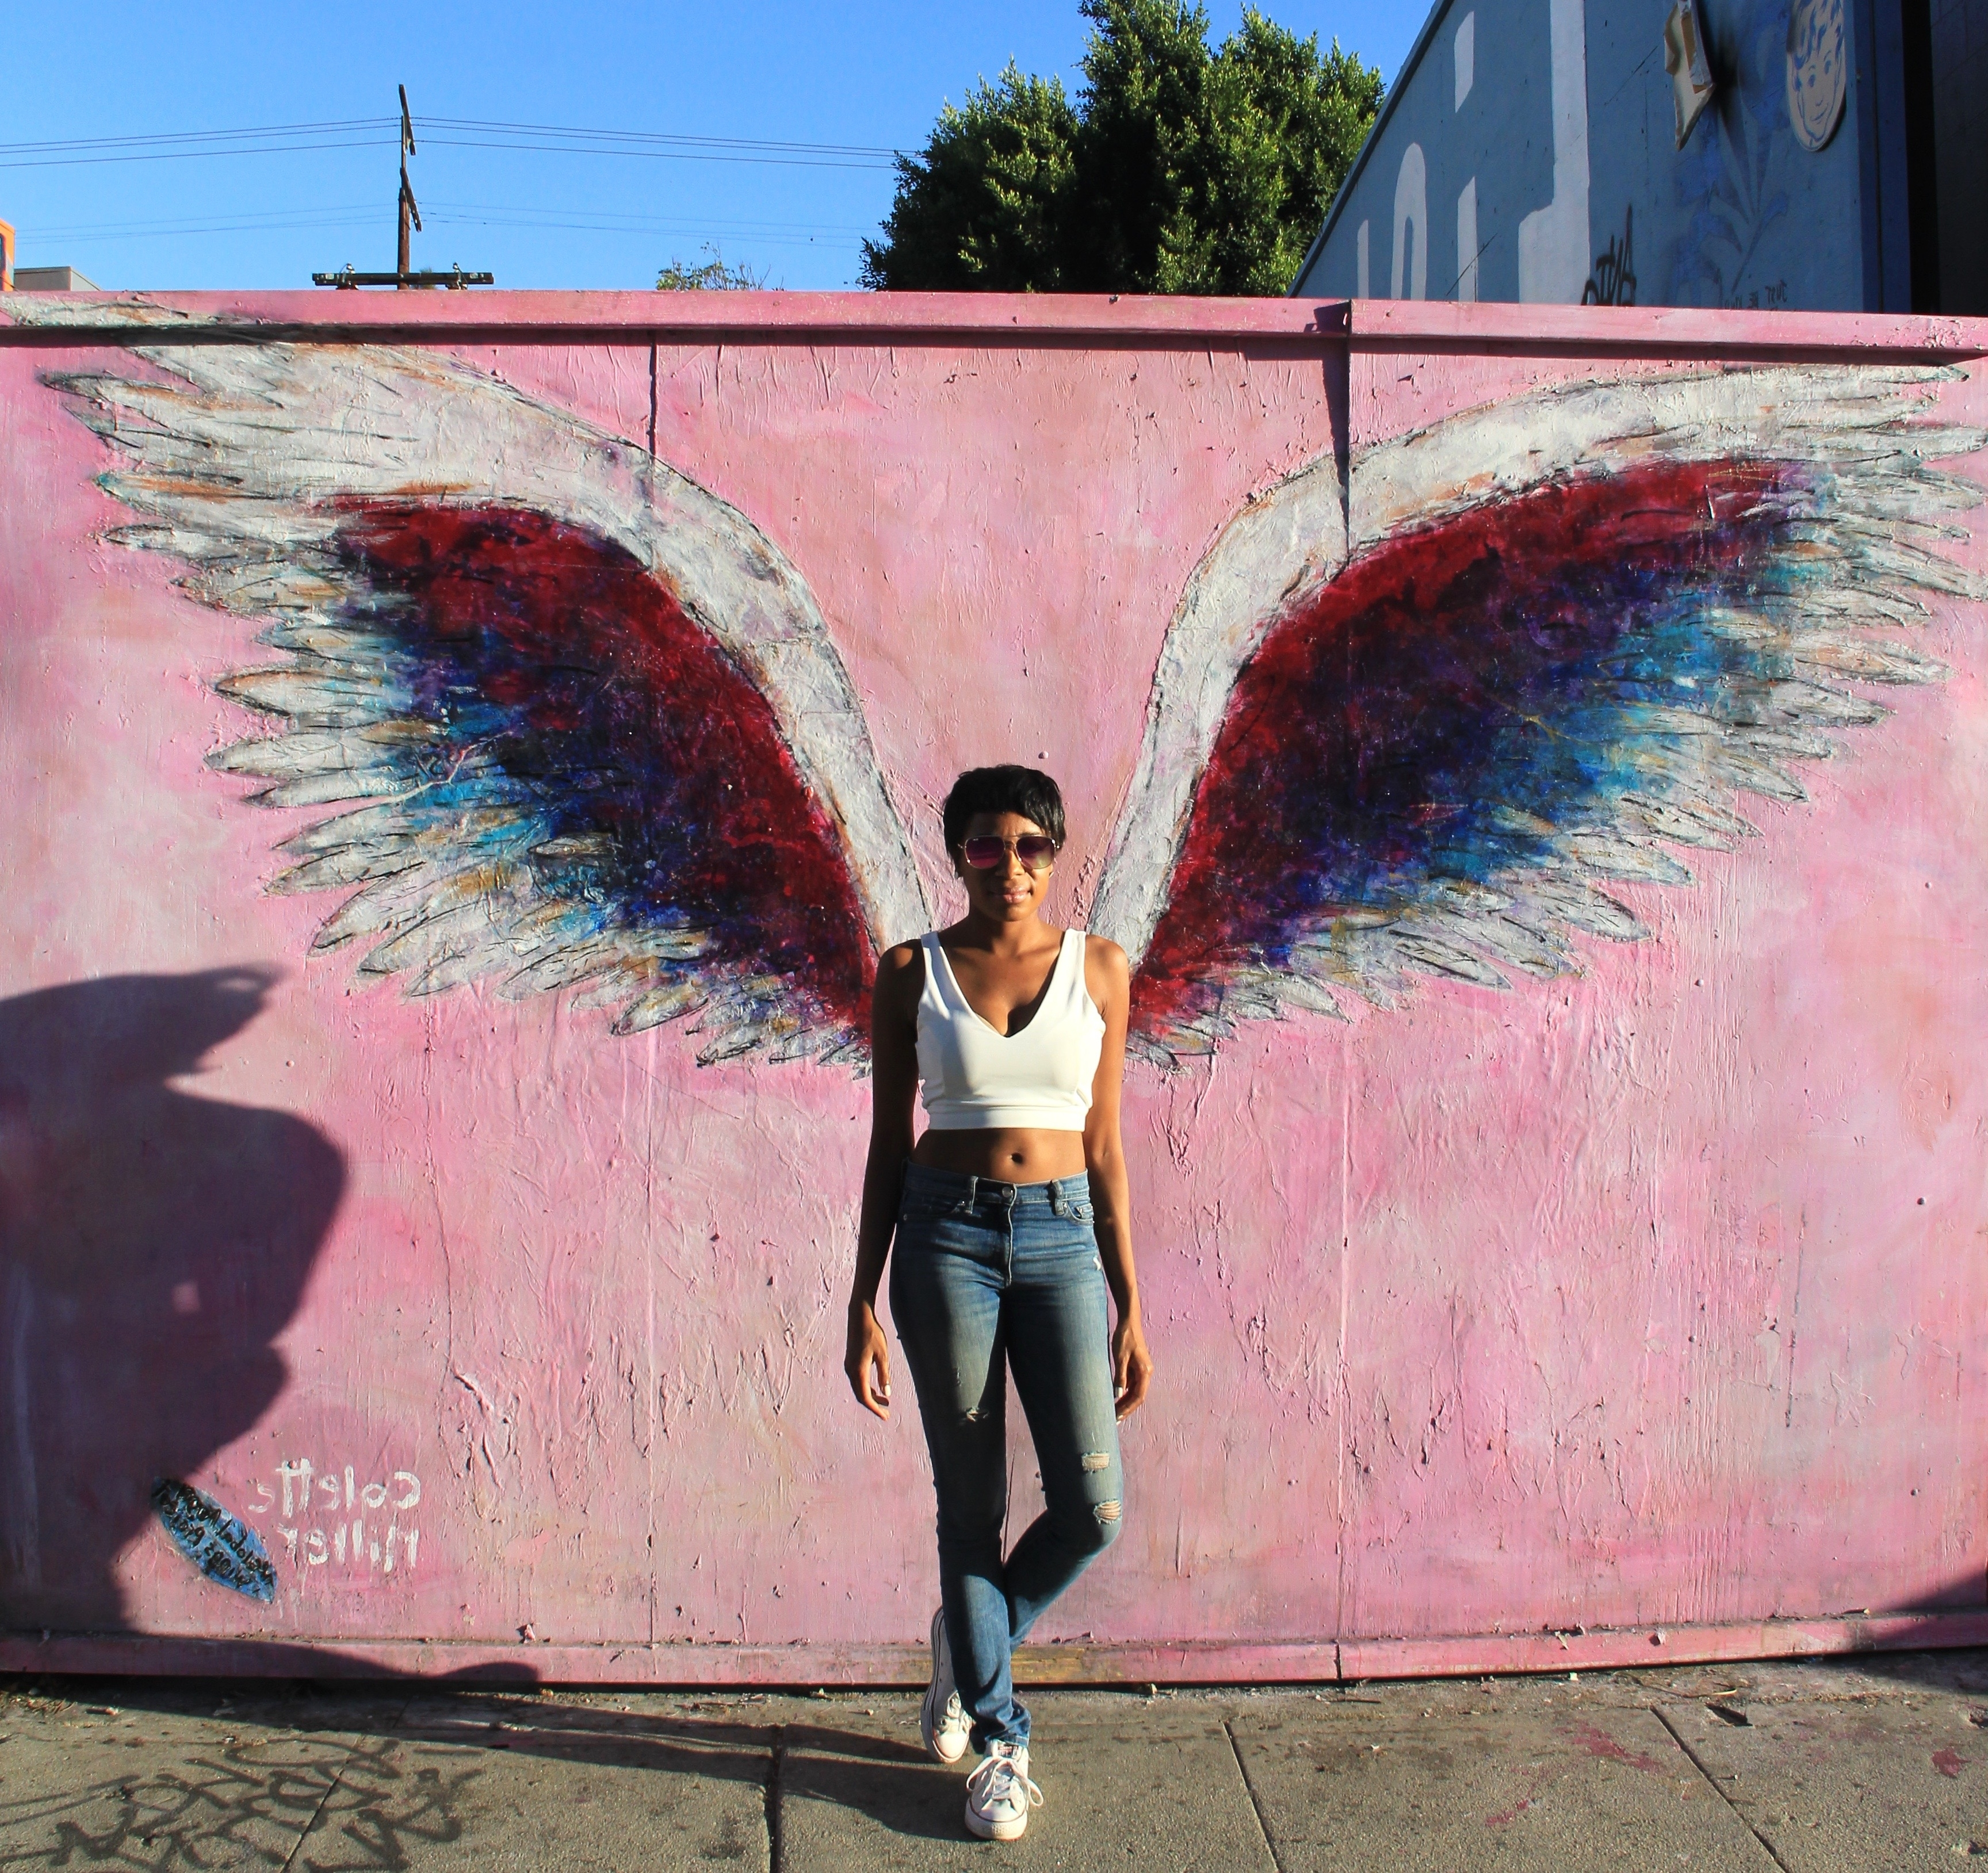 5 Insta Worthy Walls On Melrose Ave In Los Angeles – With Regard To Well Known Los Angeles Wall Art (View 3 of 15)